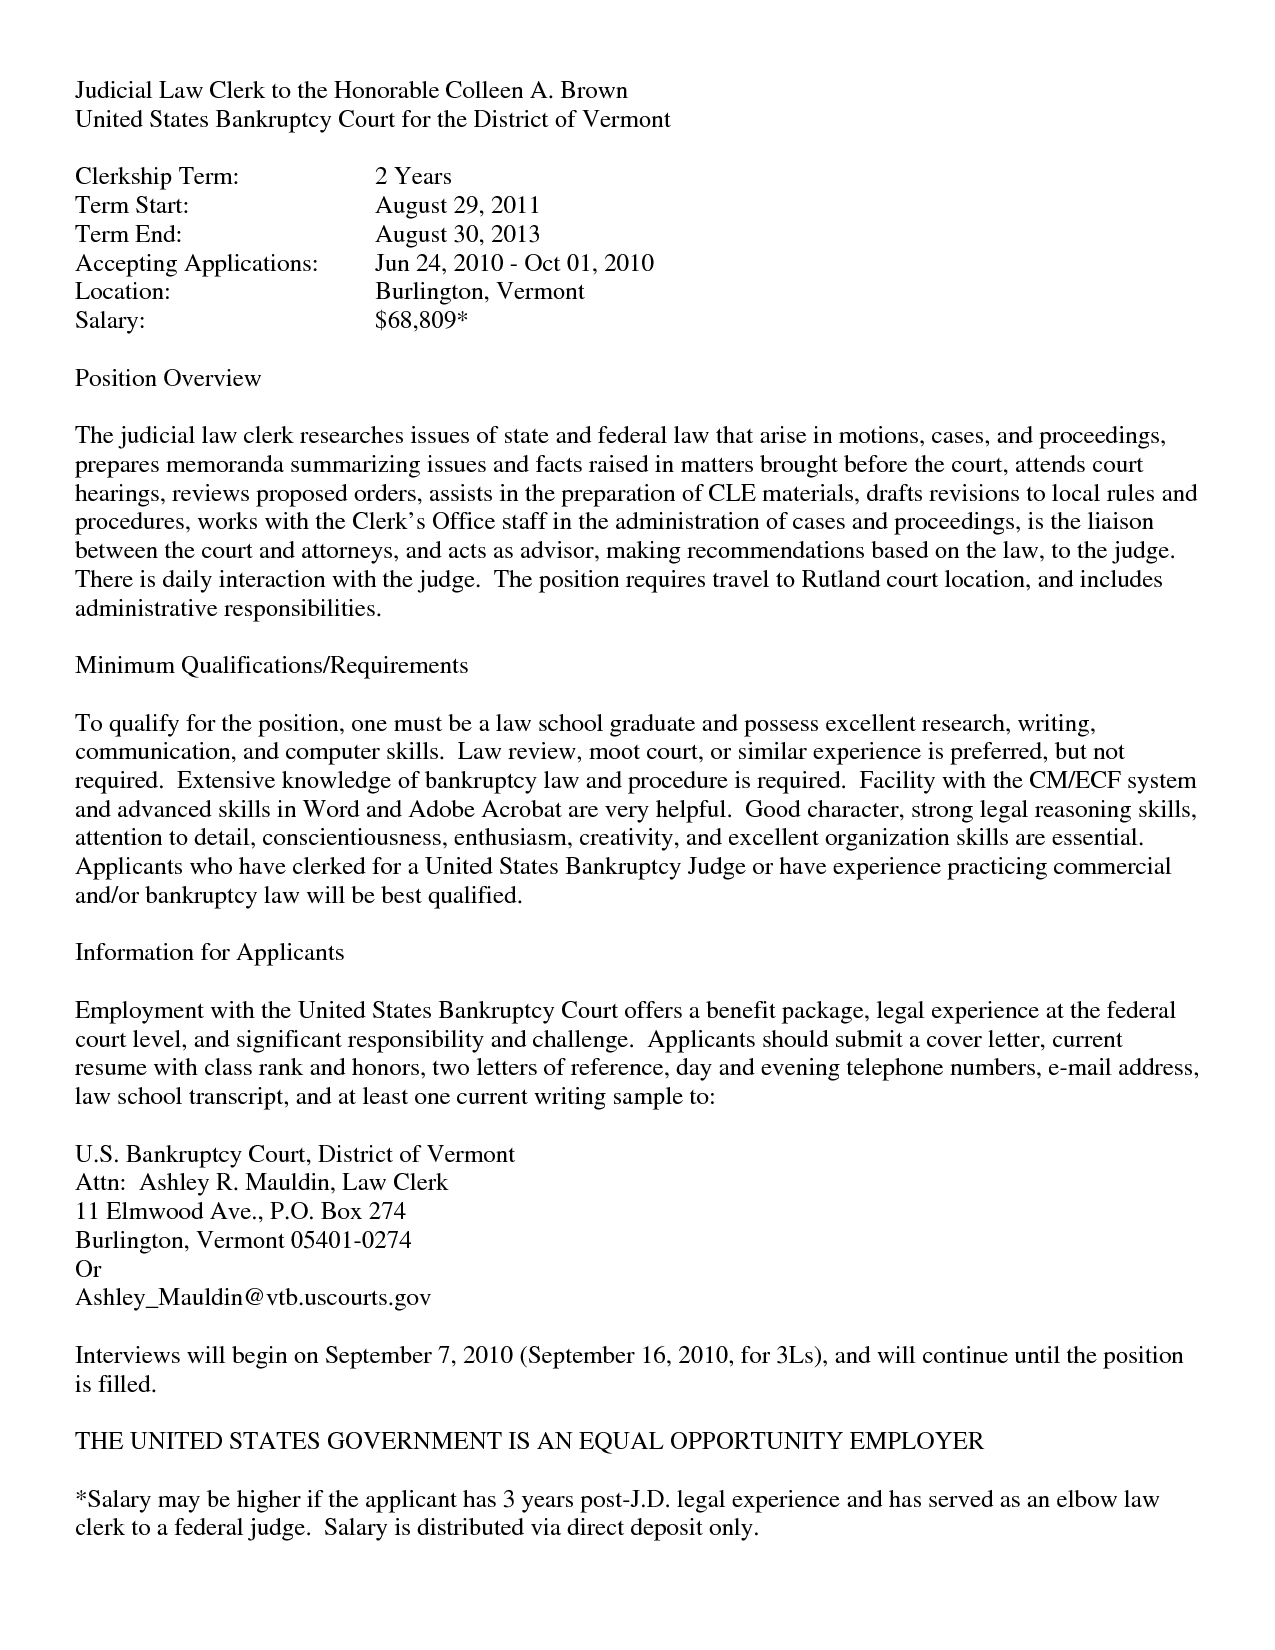 school recommendation letter template example-Re mendation Letter Sample For Job ApplicationReference Letter Examples Business Letter Sample 10-c